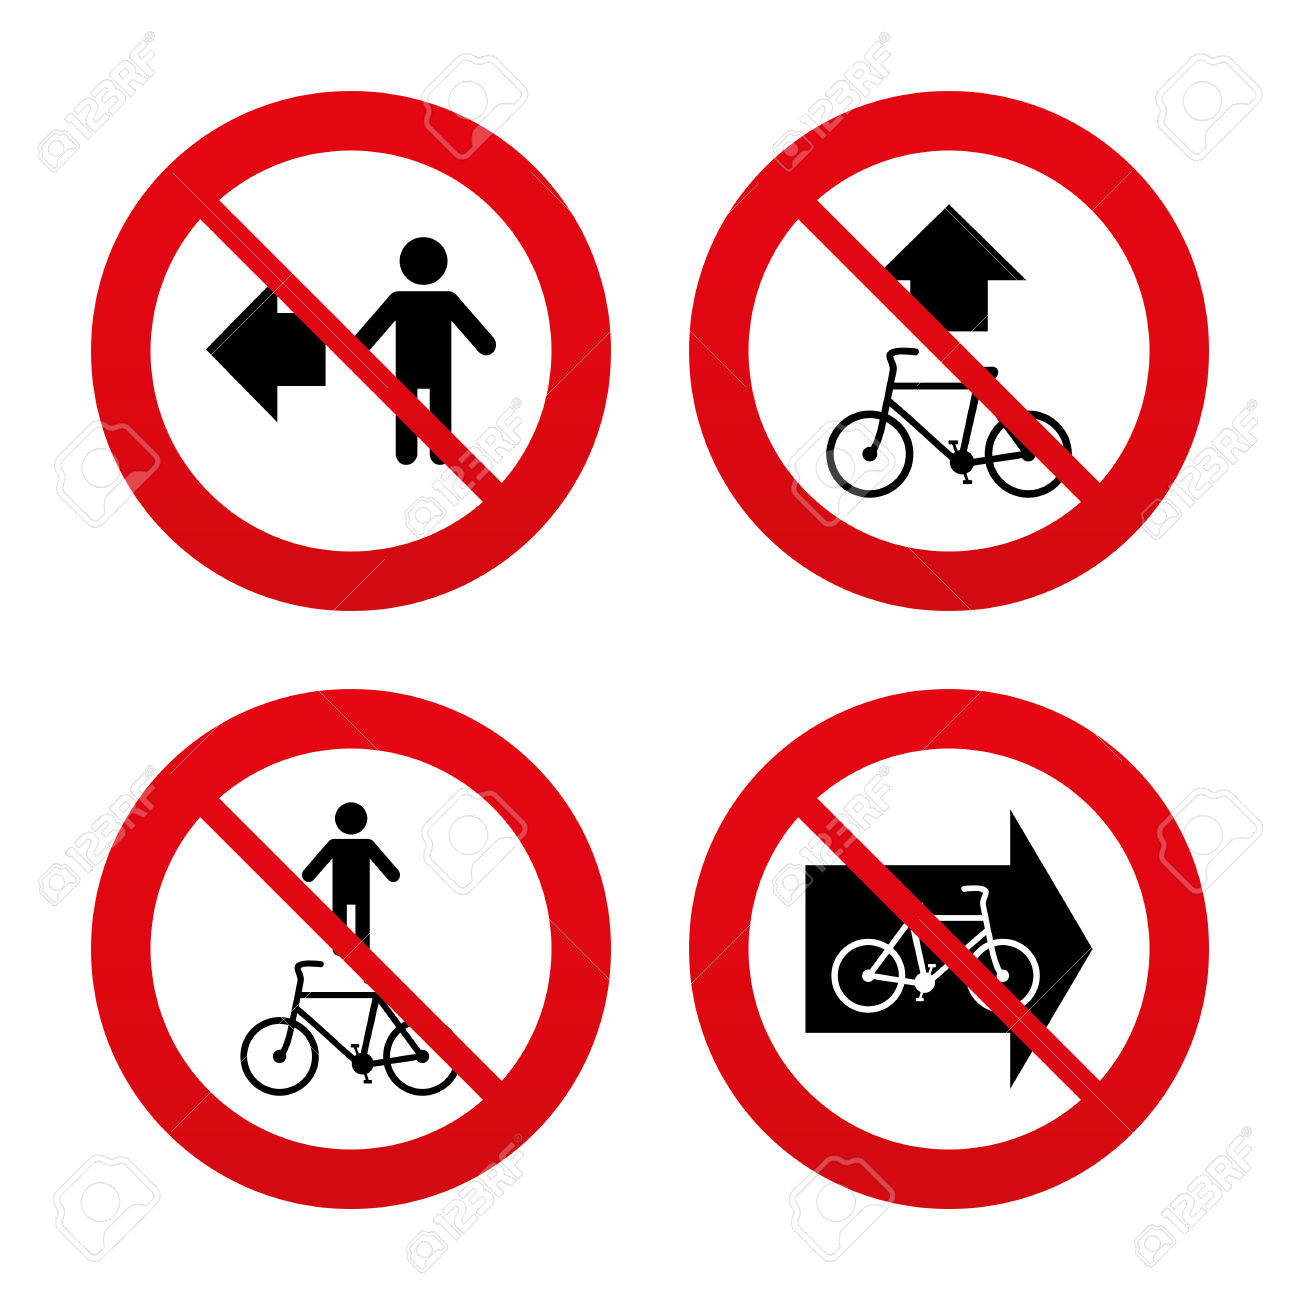 Cycle path signs clipart #5